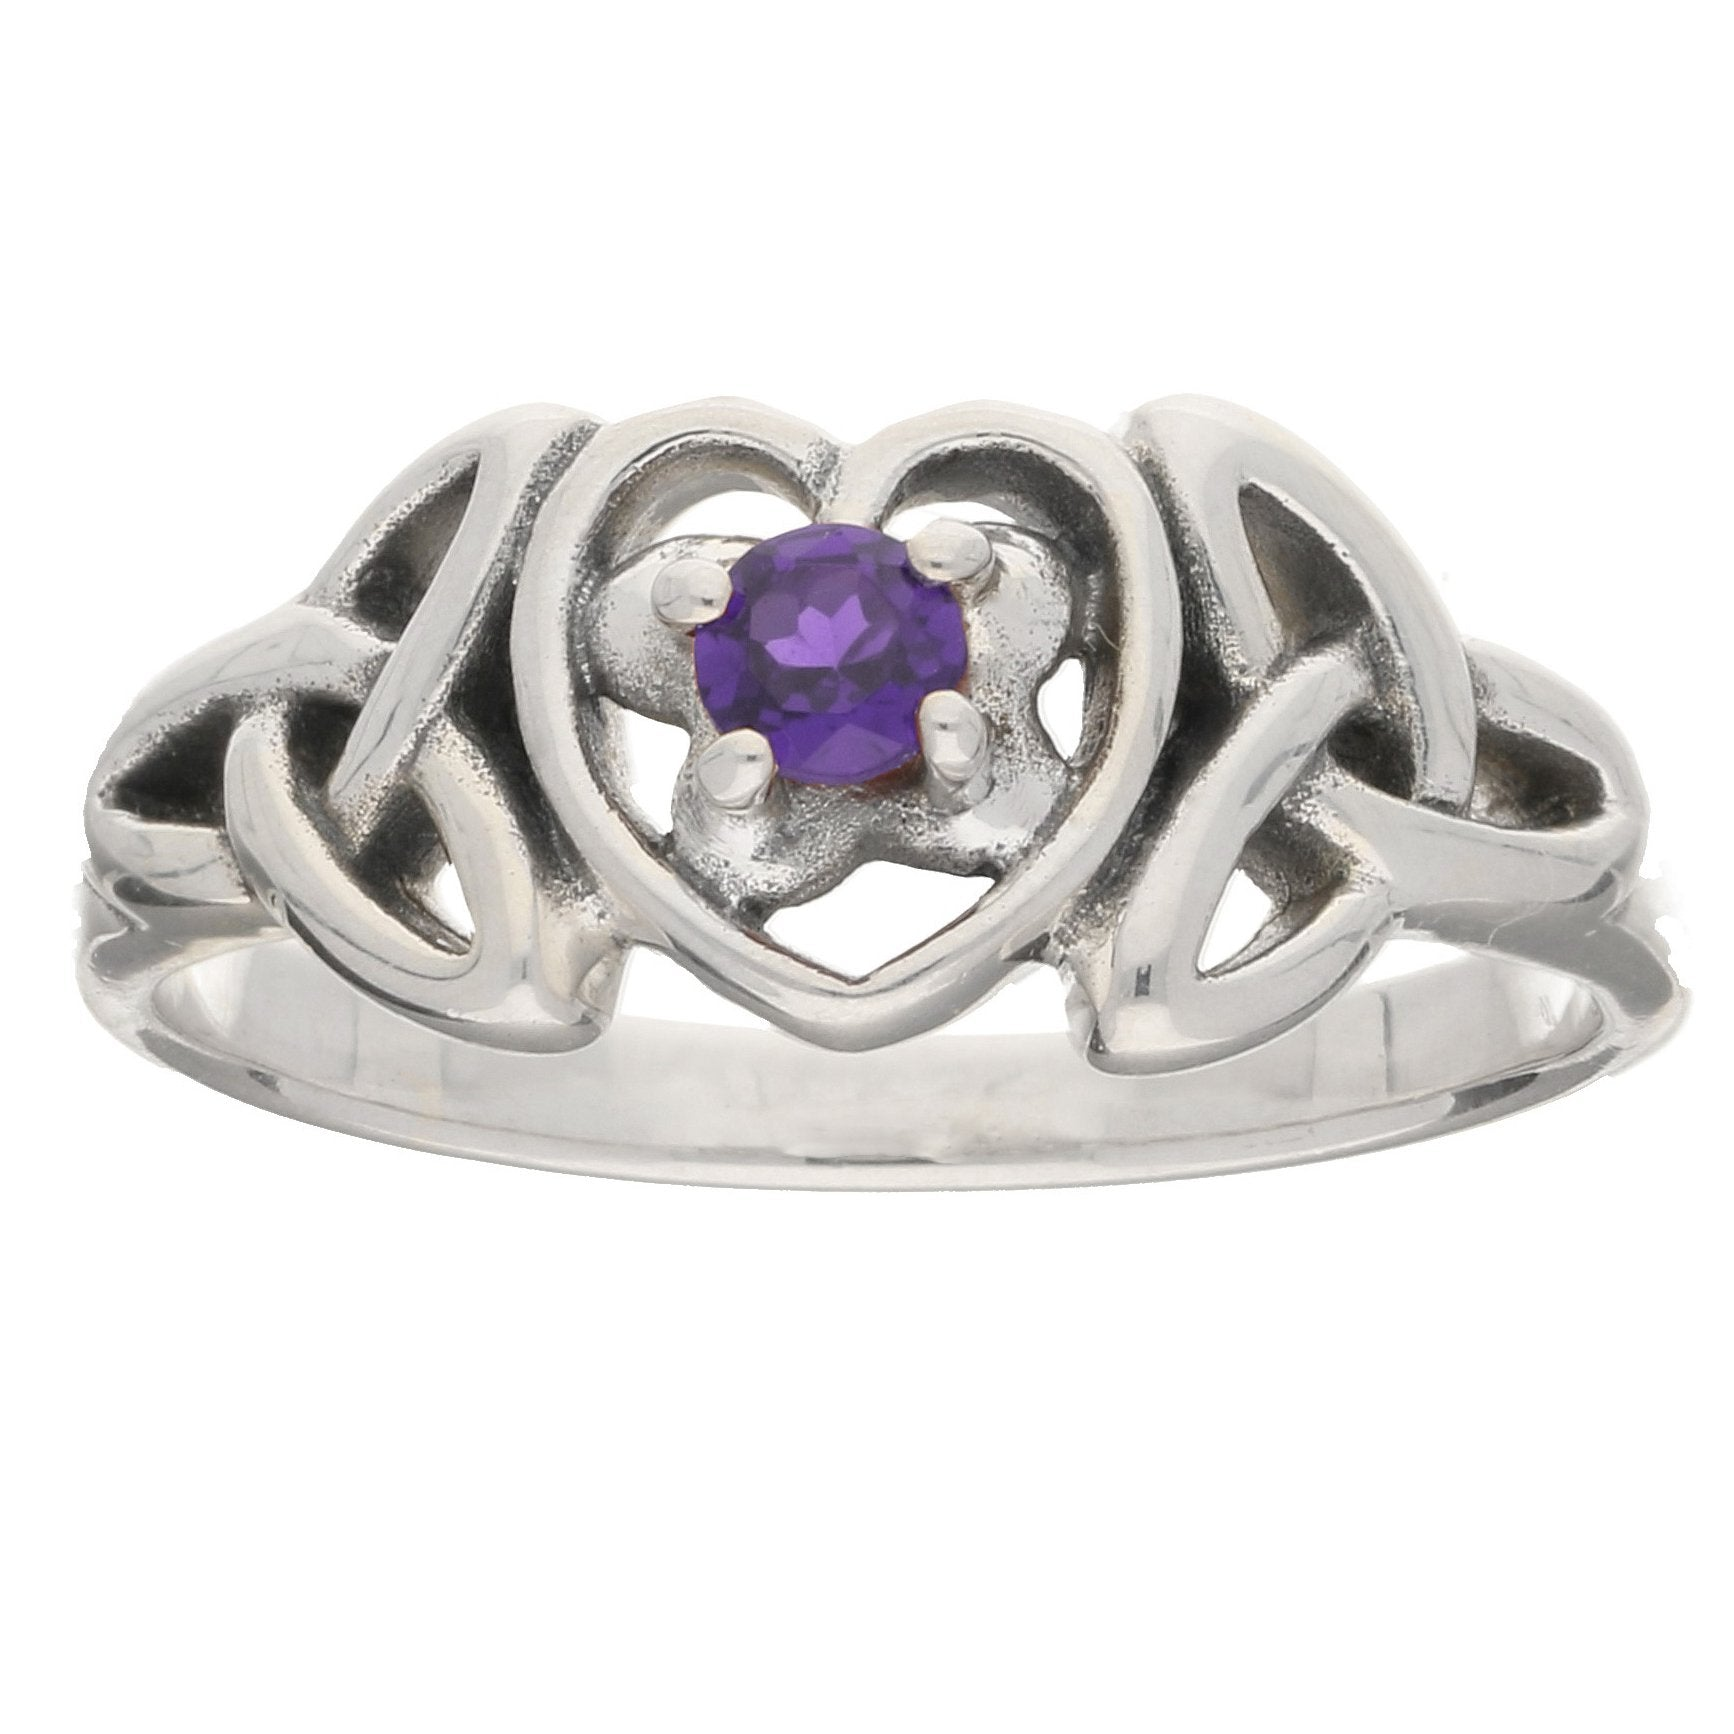 February Birthstone Ring Sterling Silver Amethyst Celtic Trinity Knot Heart - Silver Insanity